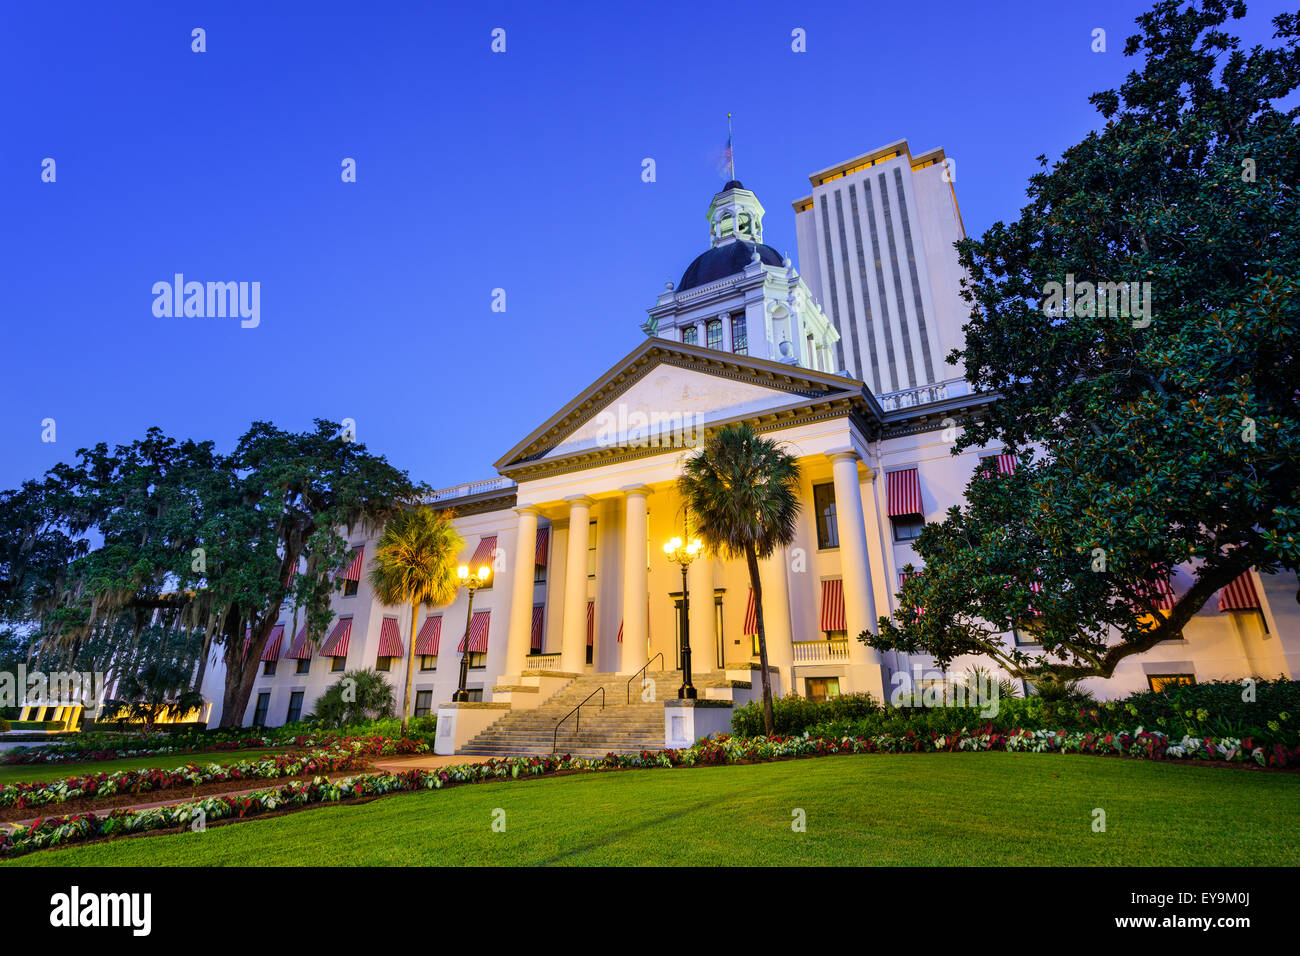 Tallahassee, Florida, USA at the Old and New Capitol Building. - Stock Image